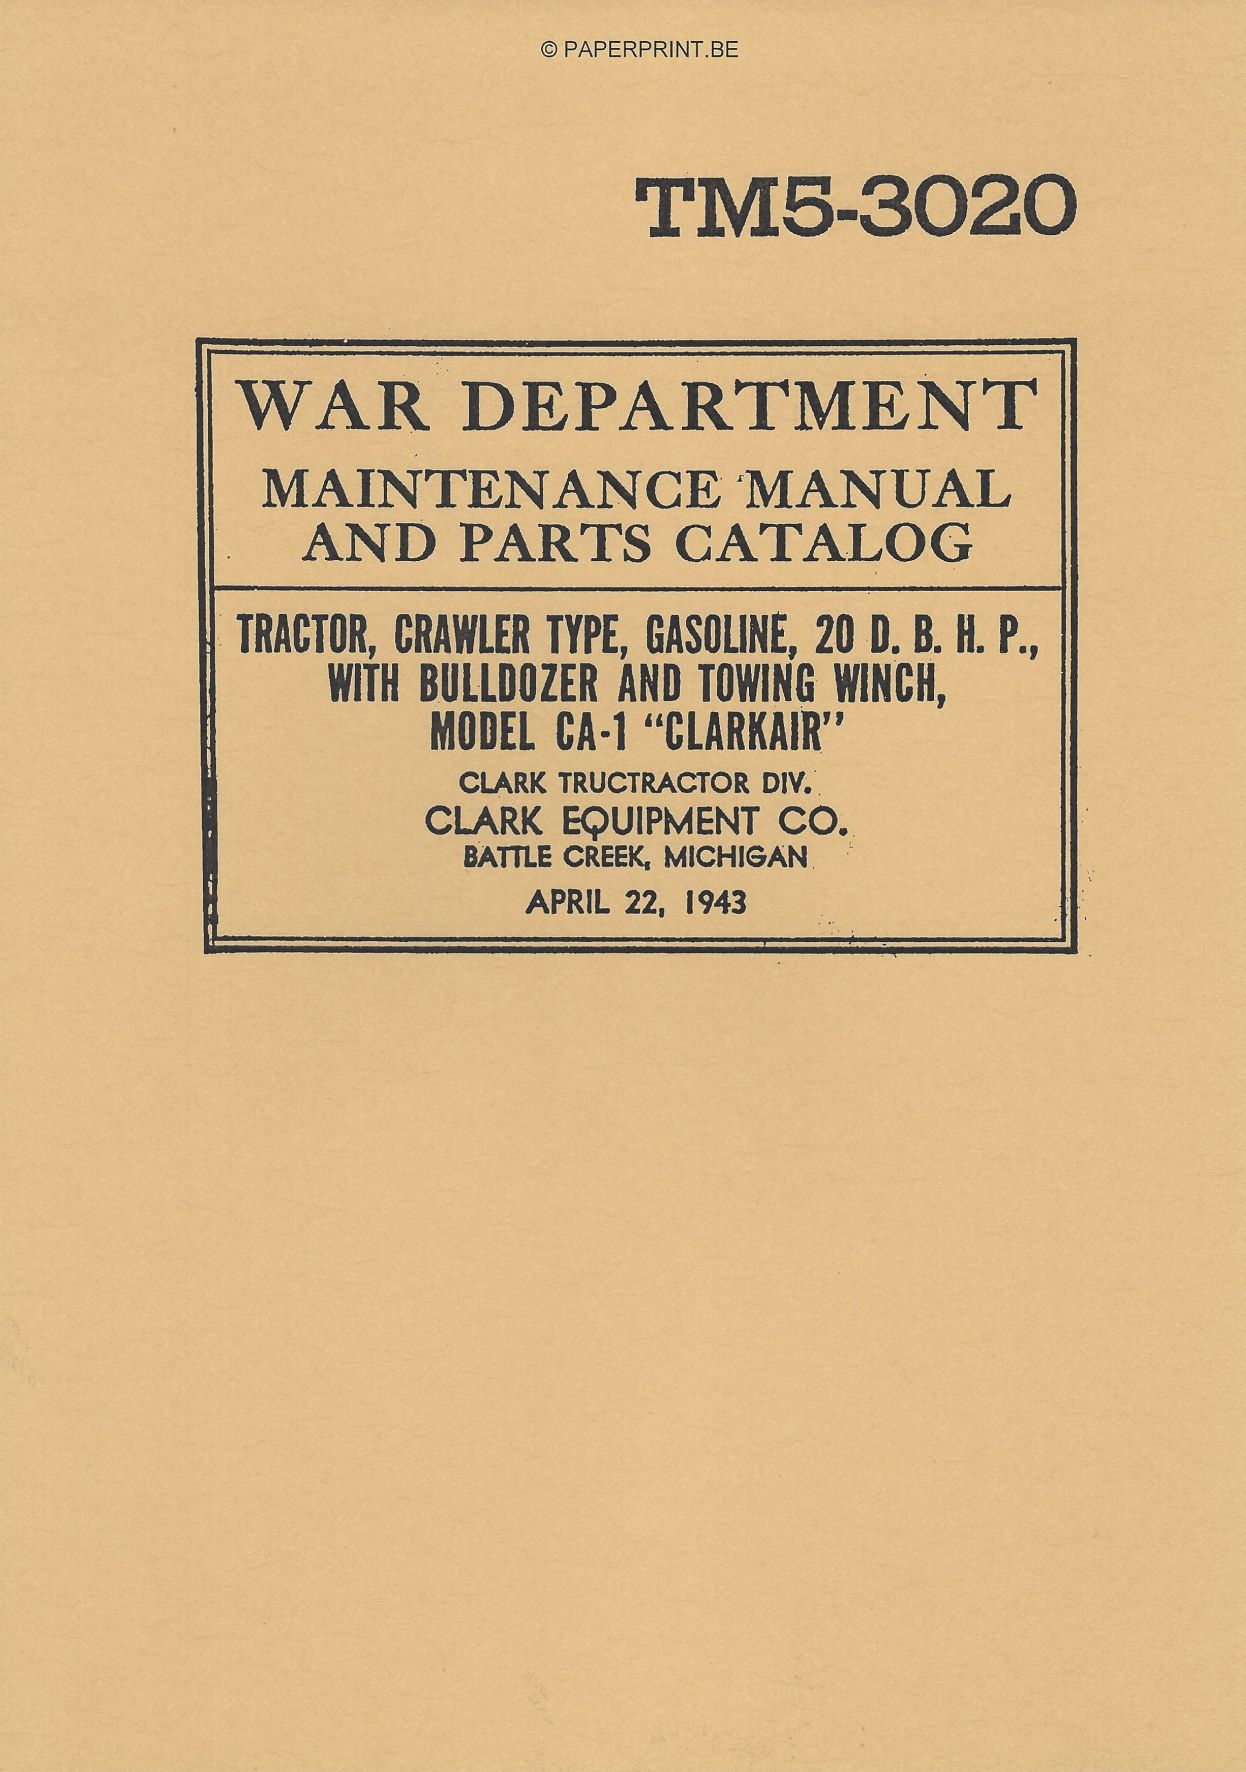 TM 5-3020 US CLARKAIR CA-1 MAINTENANCE MANUAL AND PARTS CATALOG